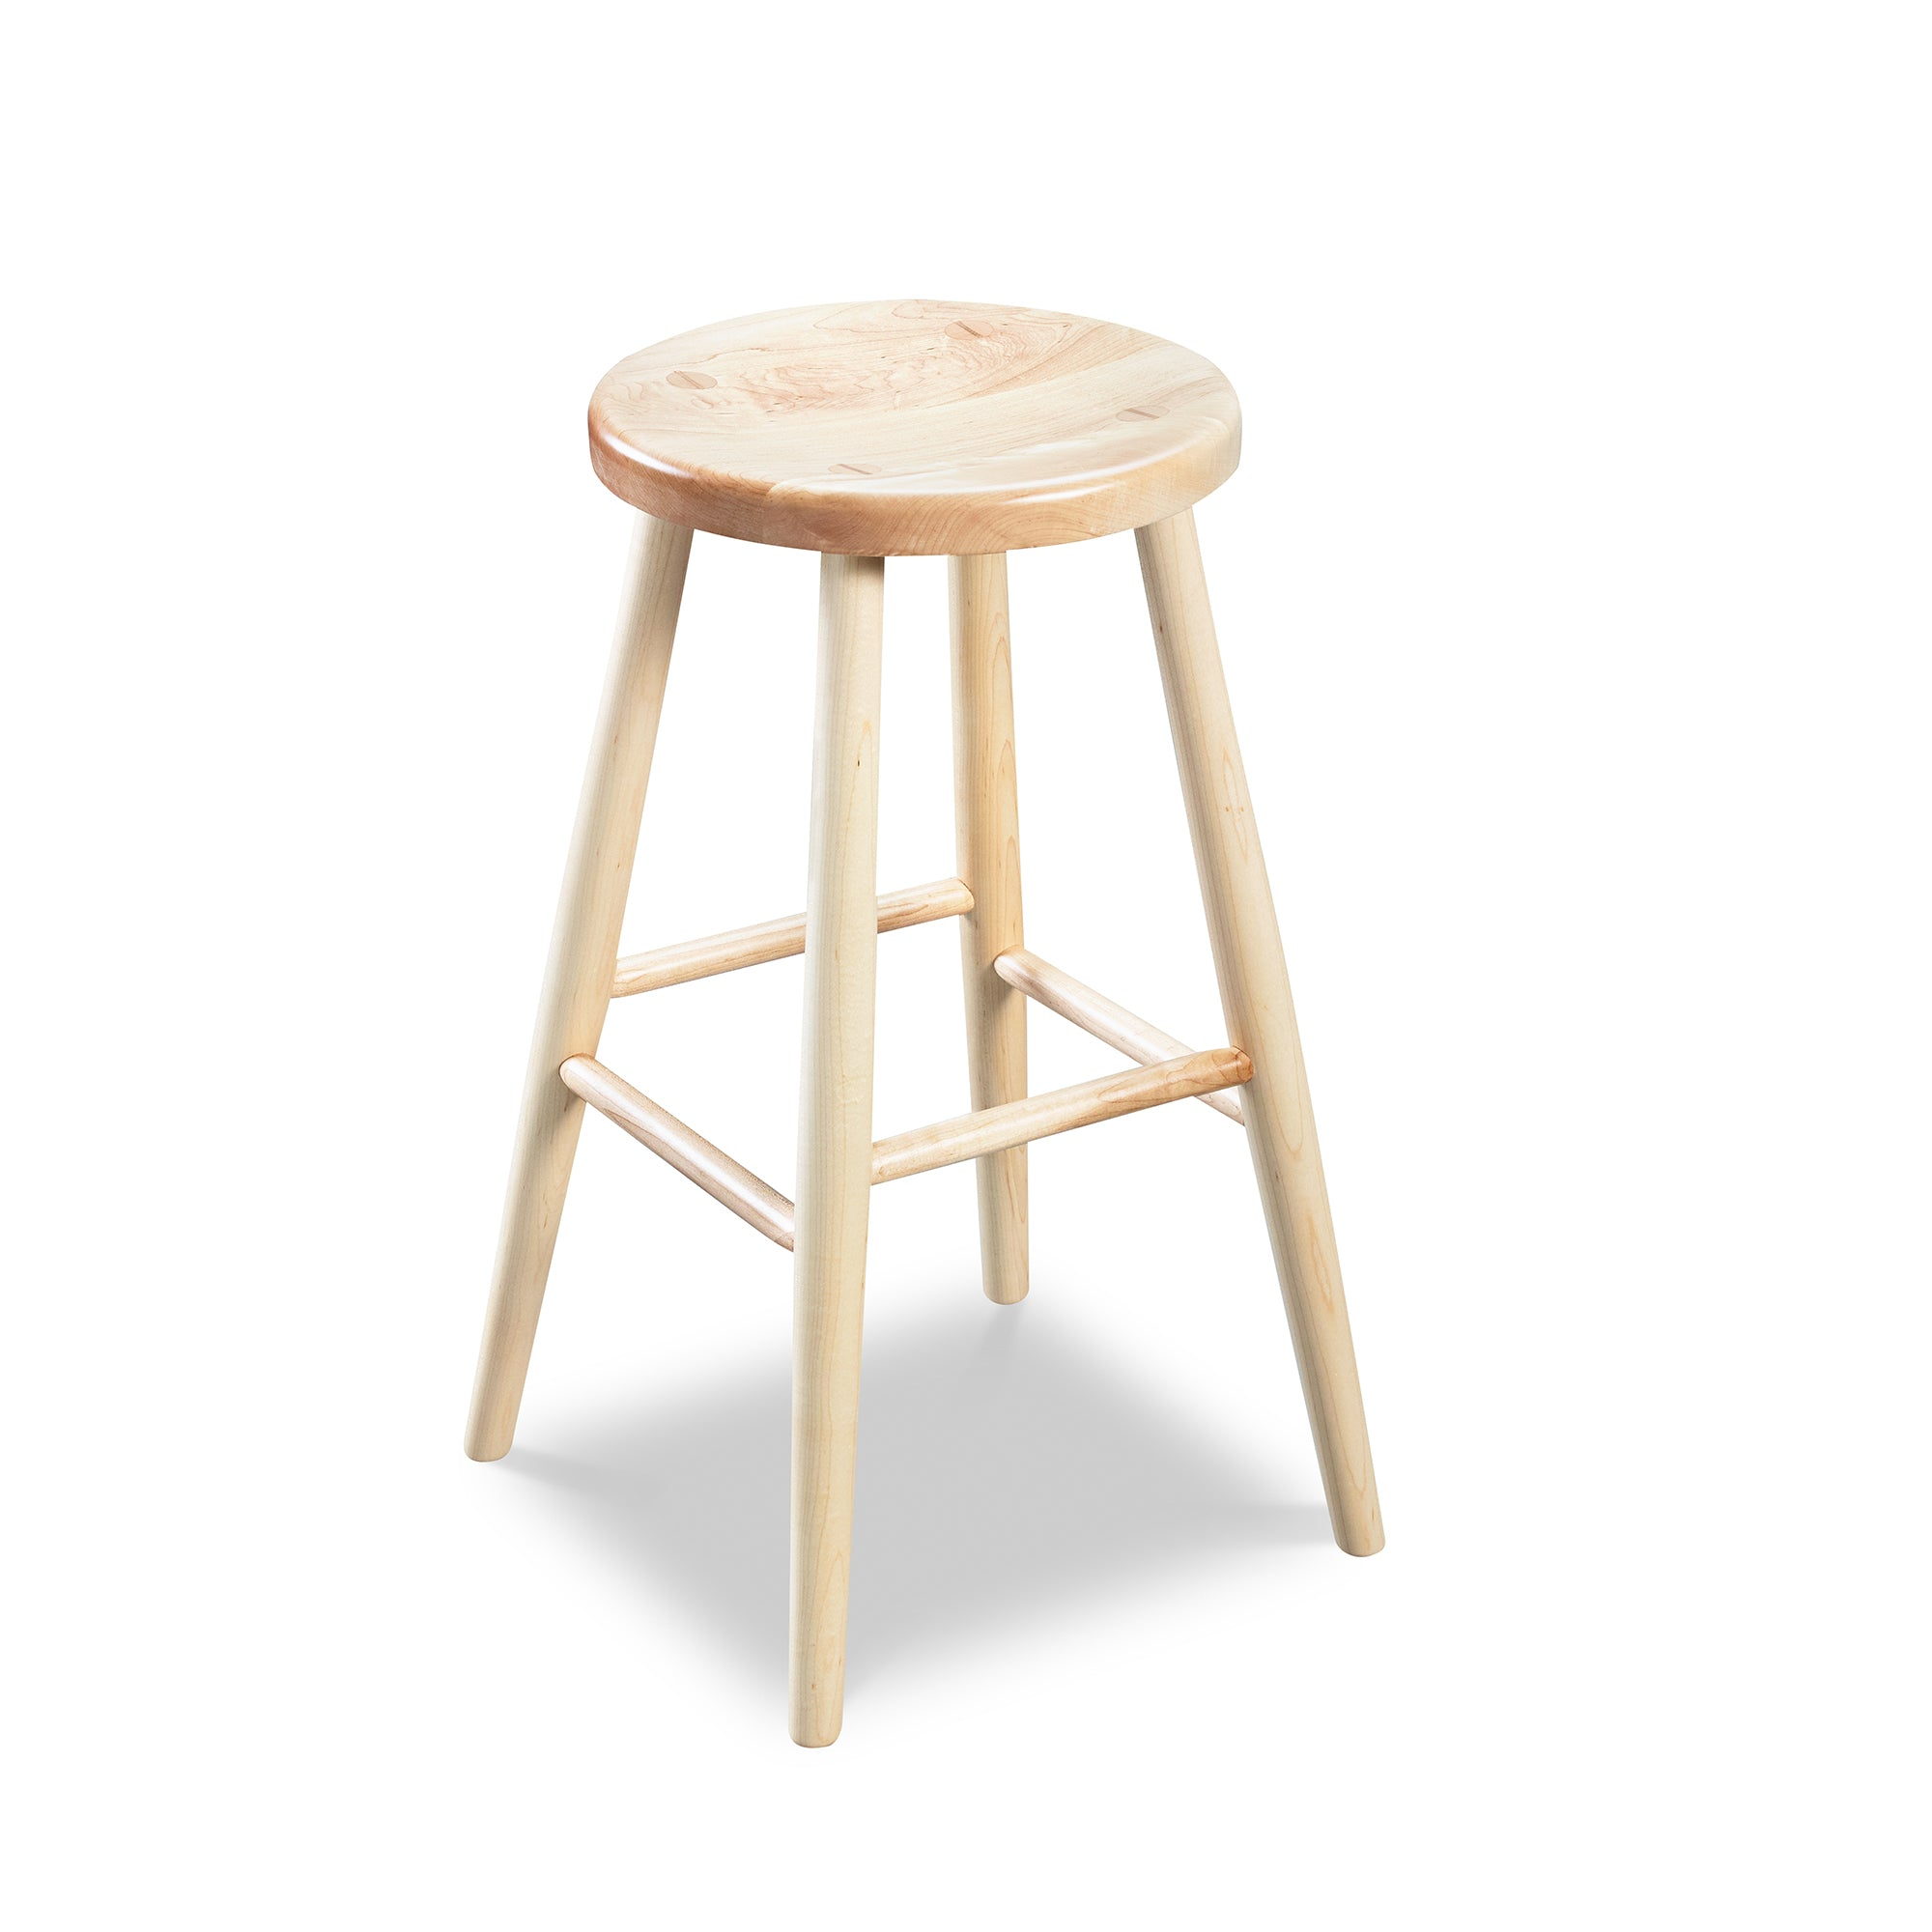 Simple round solid maple wood stool, from Maine's Chilton Furniture Co.